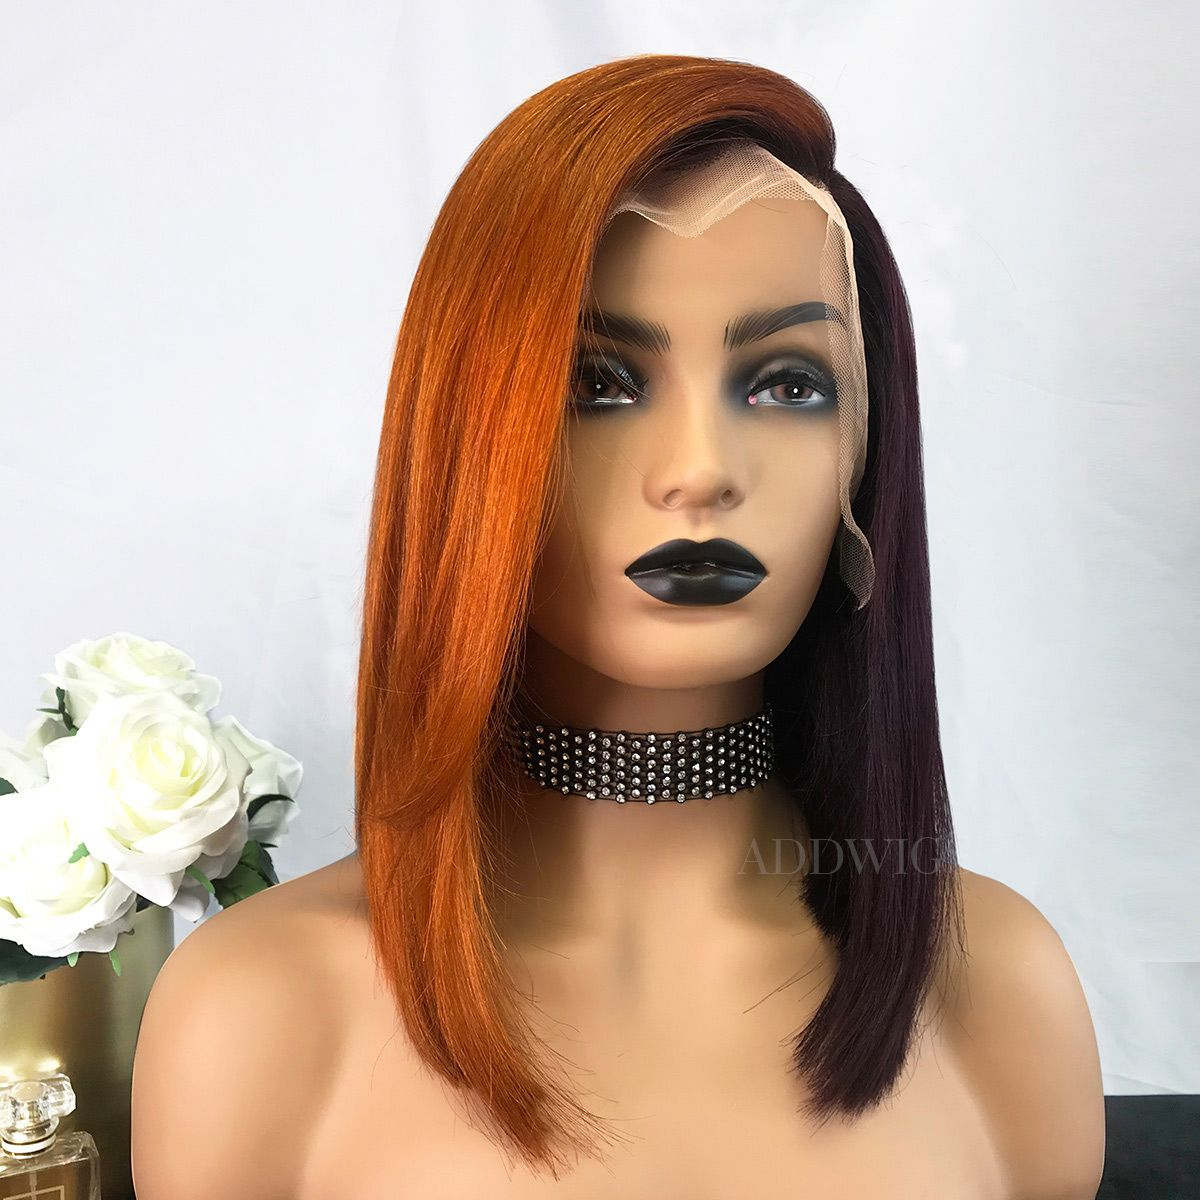 Lace Front Wigs Brown Wigs Blonde Wigs Ash Blonde Wig With Bangs 7.3 Hair Colour Wigs For Black Women